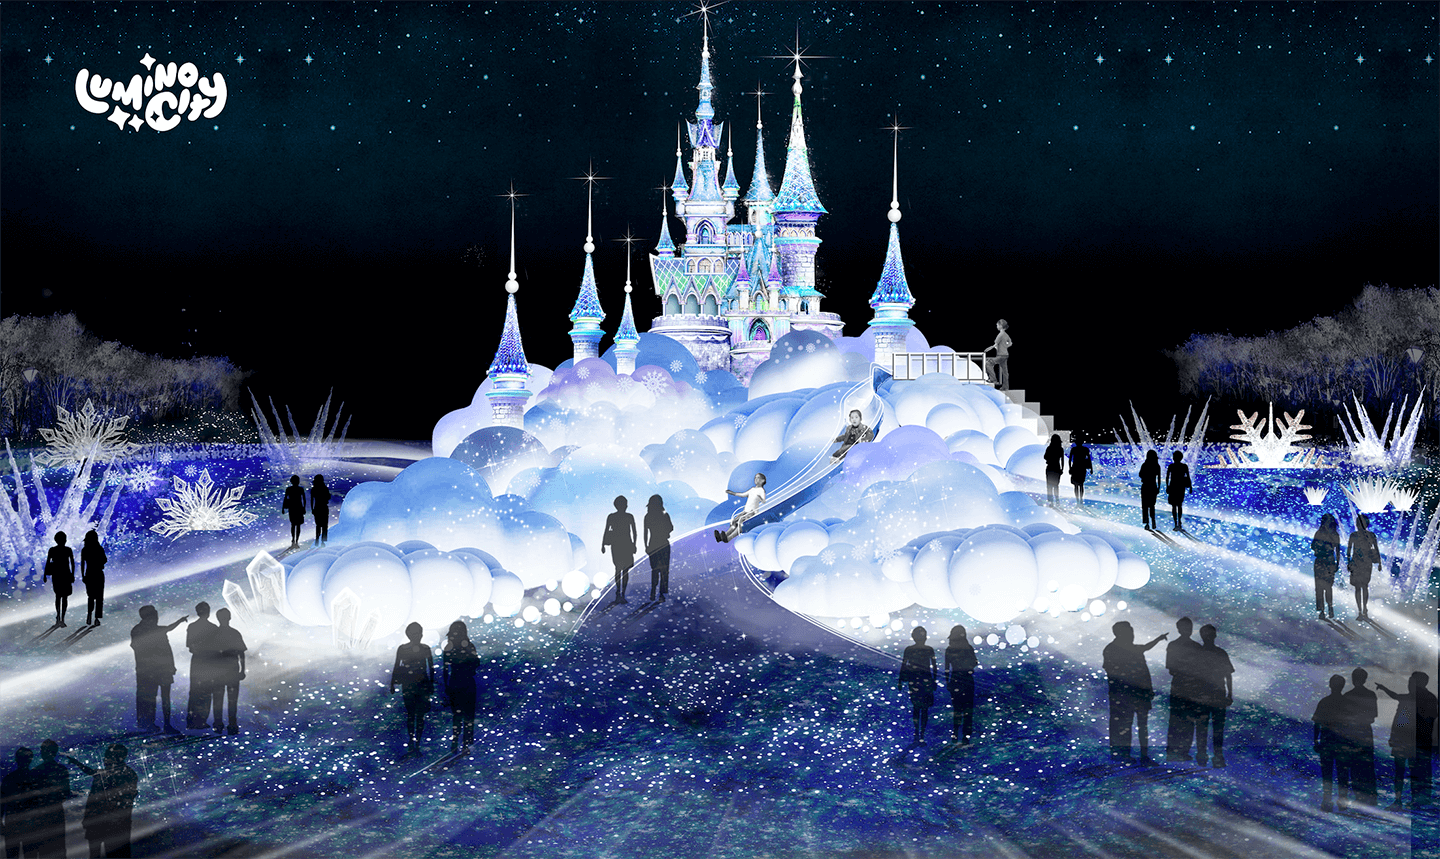 the-castle-in-the-clouds-the-winter-fantasy-light-arts-luminocity-festival